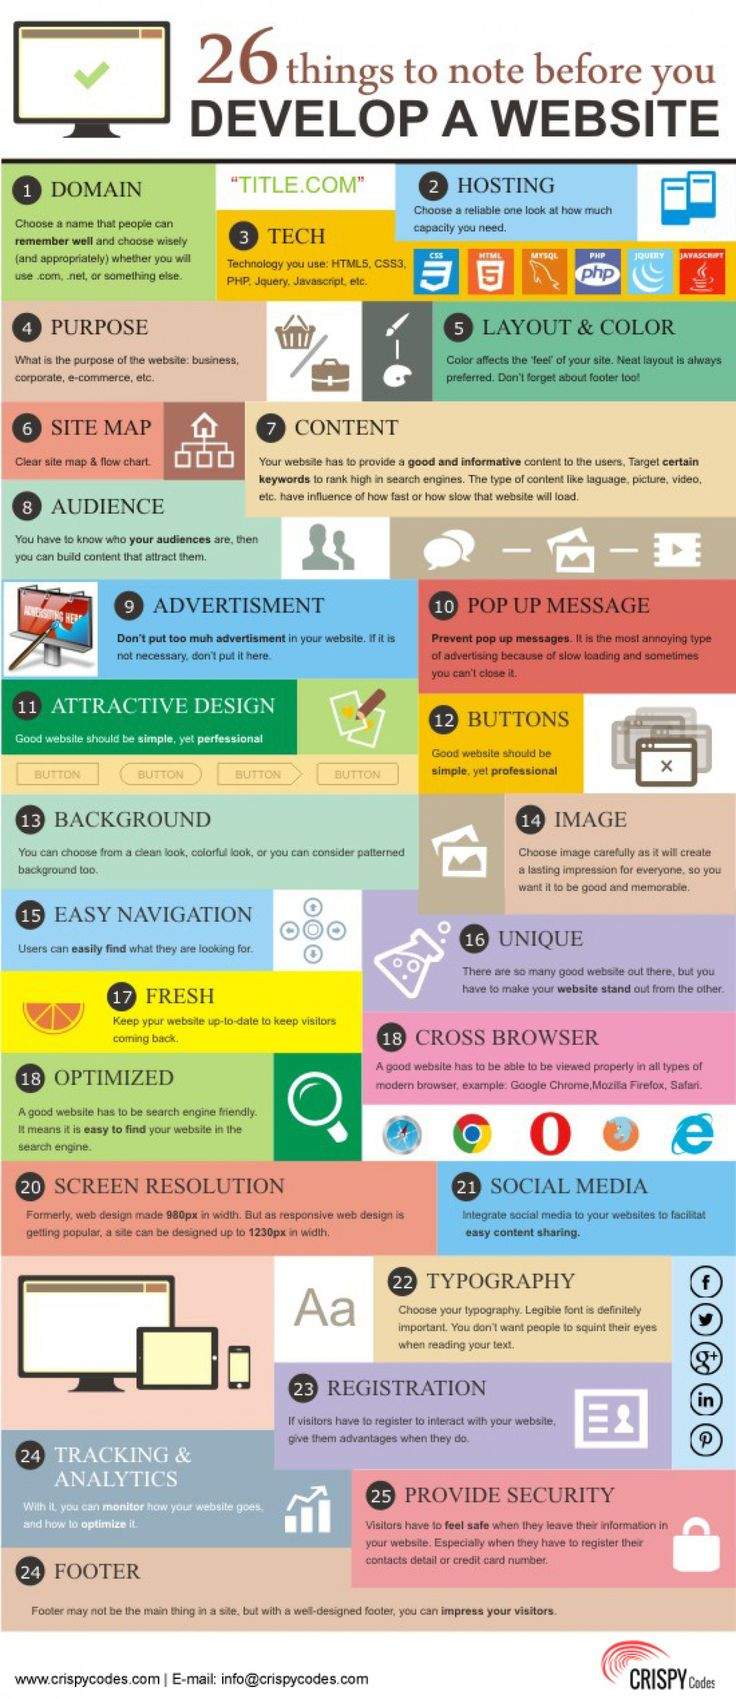 26 Things To Note Before You Develop A Website